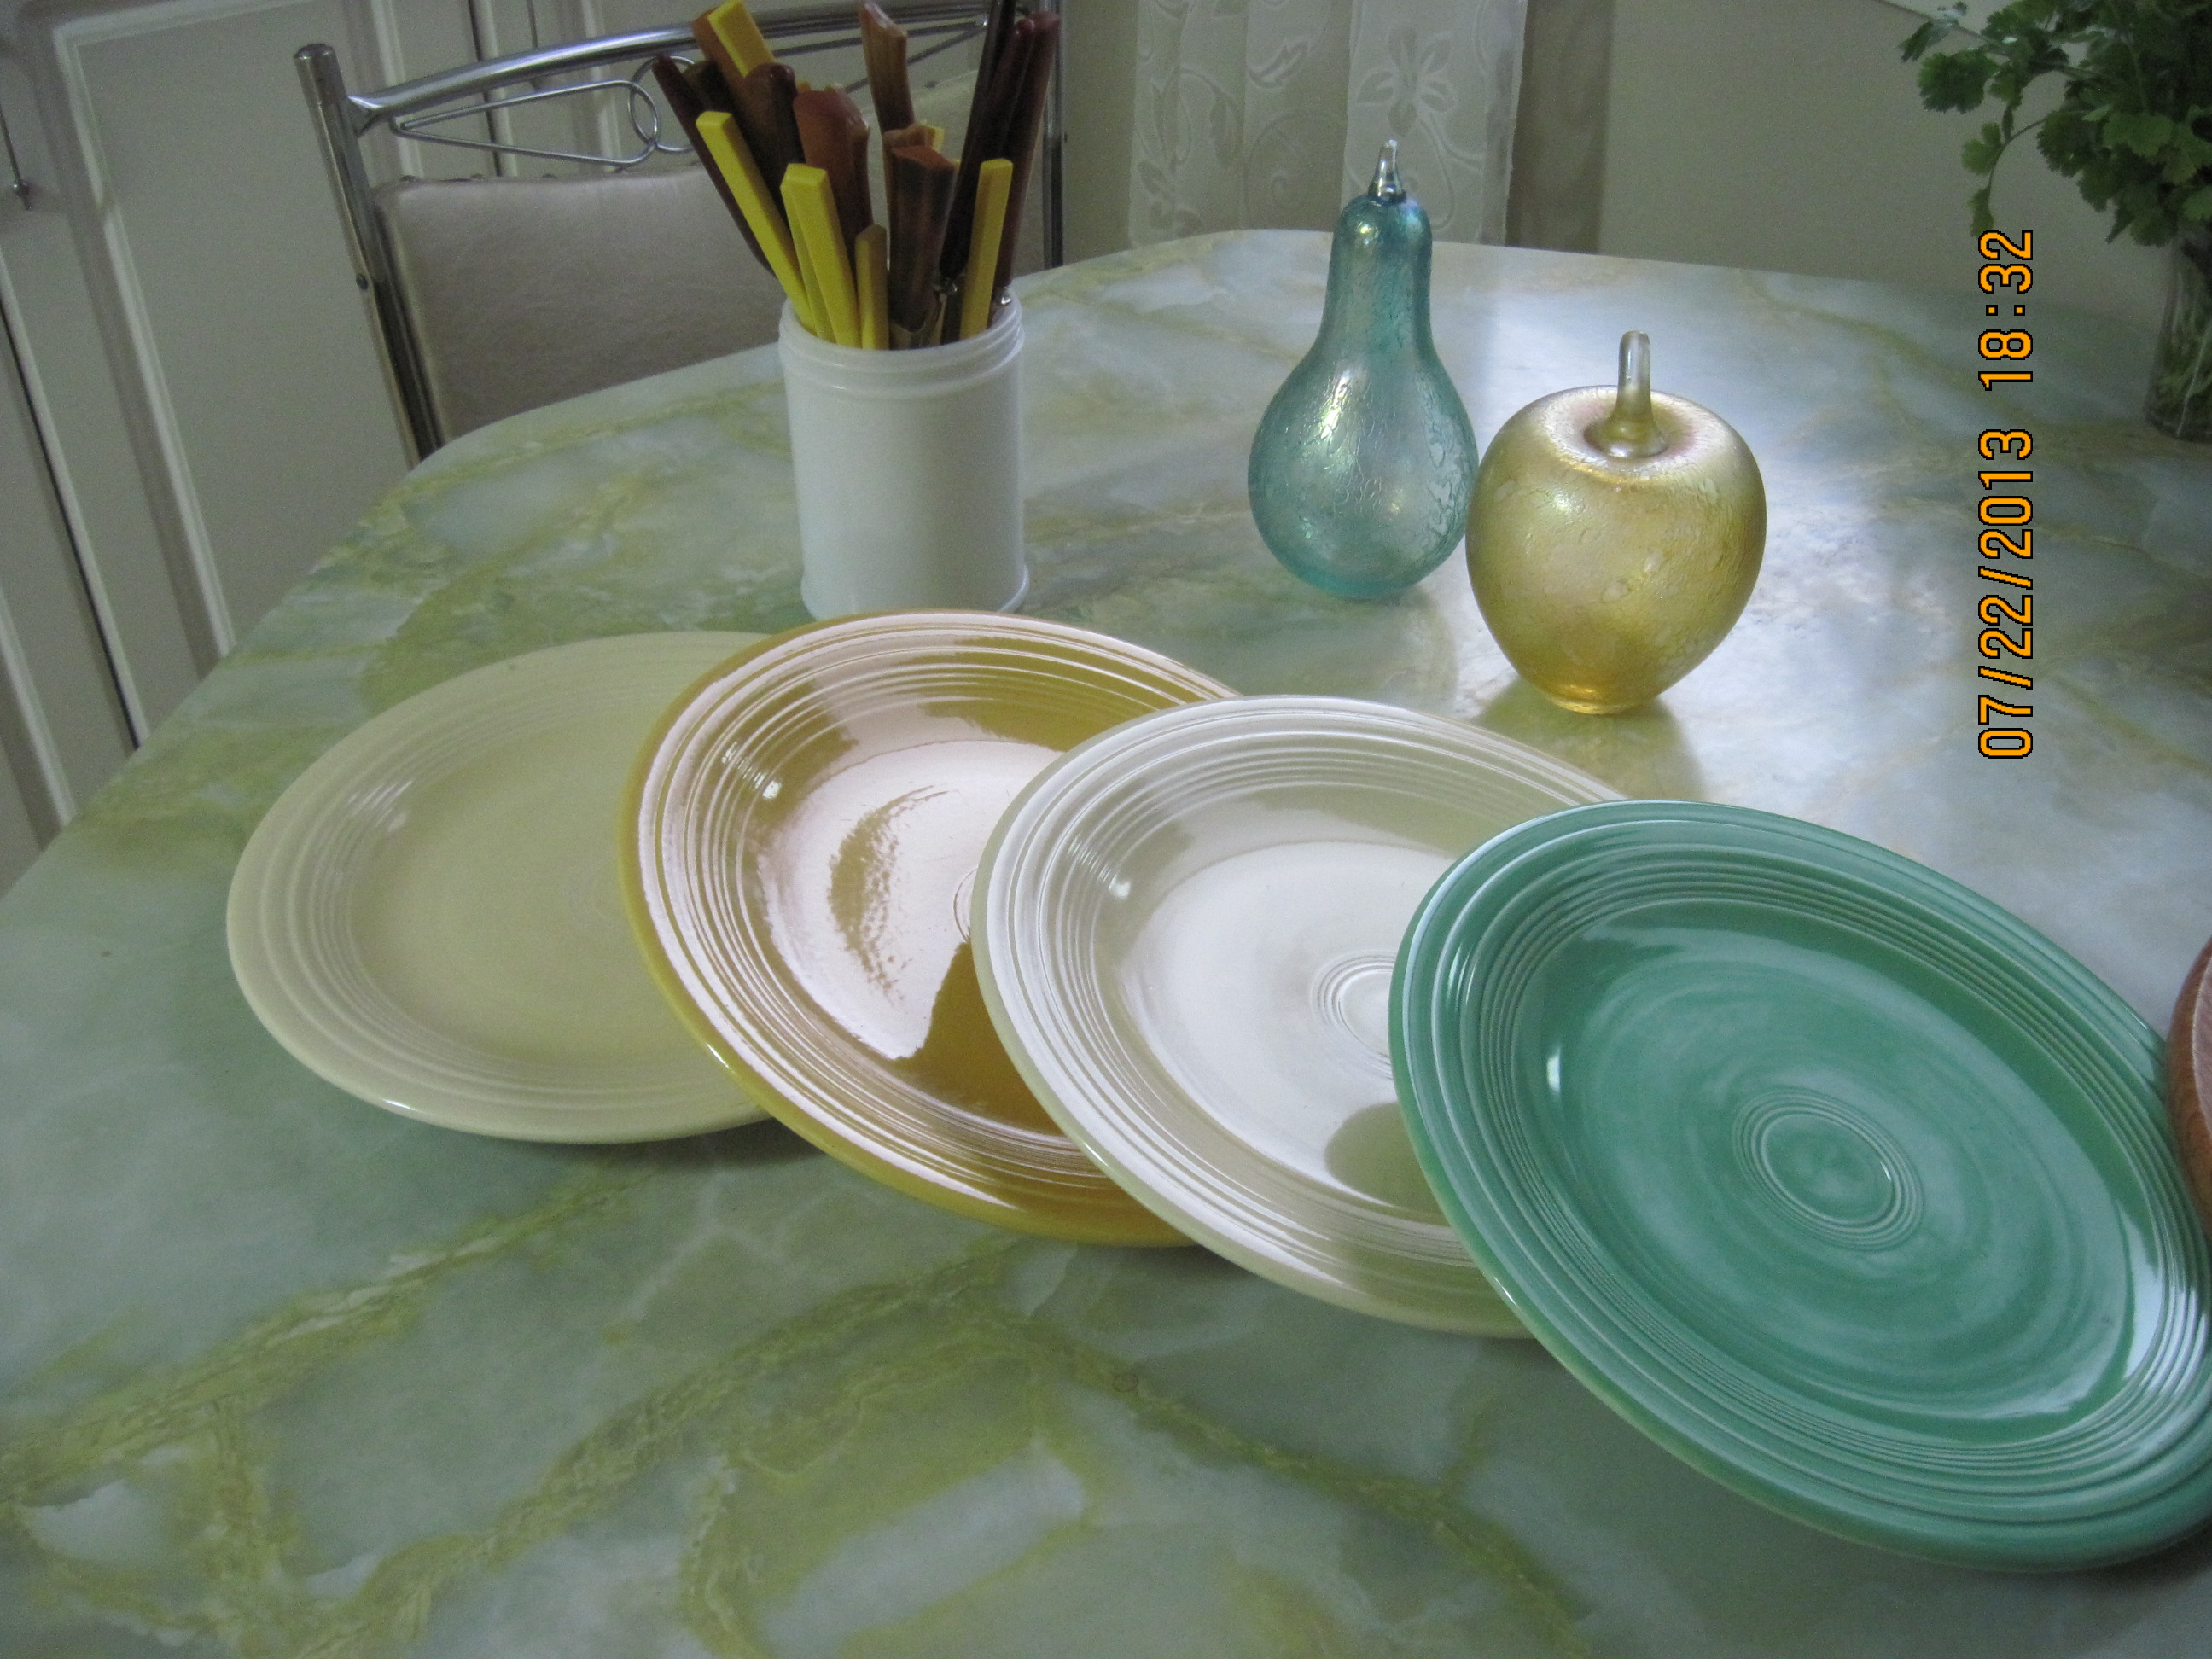 Lovely Fiestaware Plates For Dinnerware Ideas